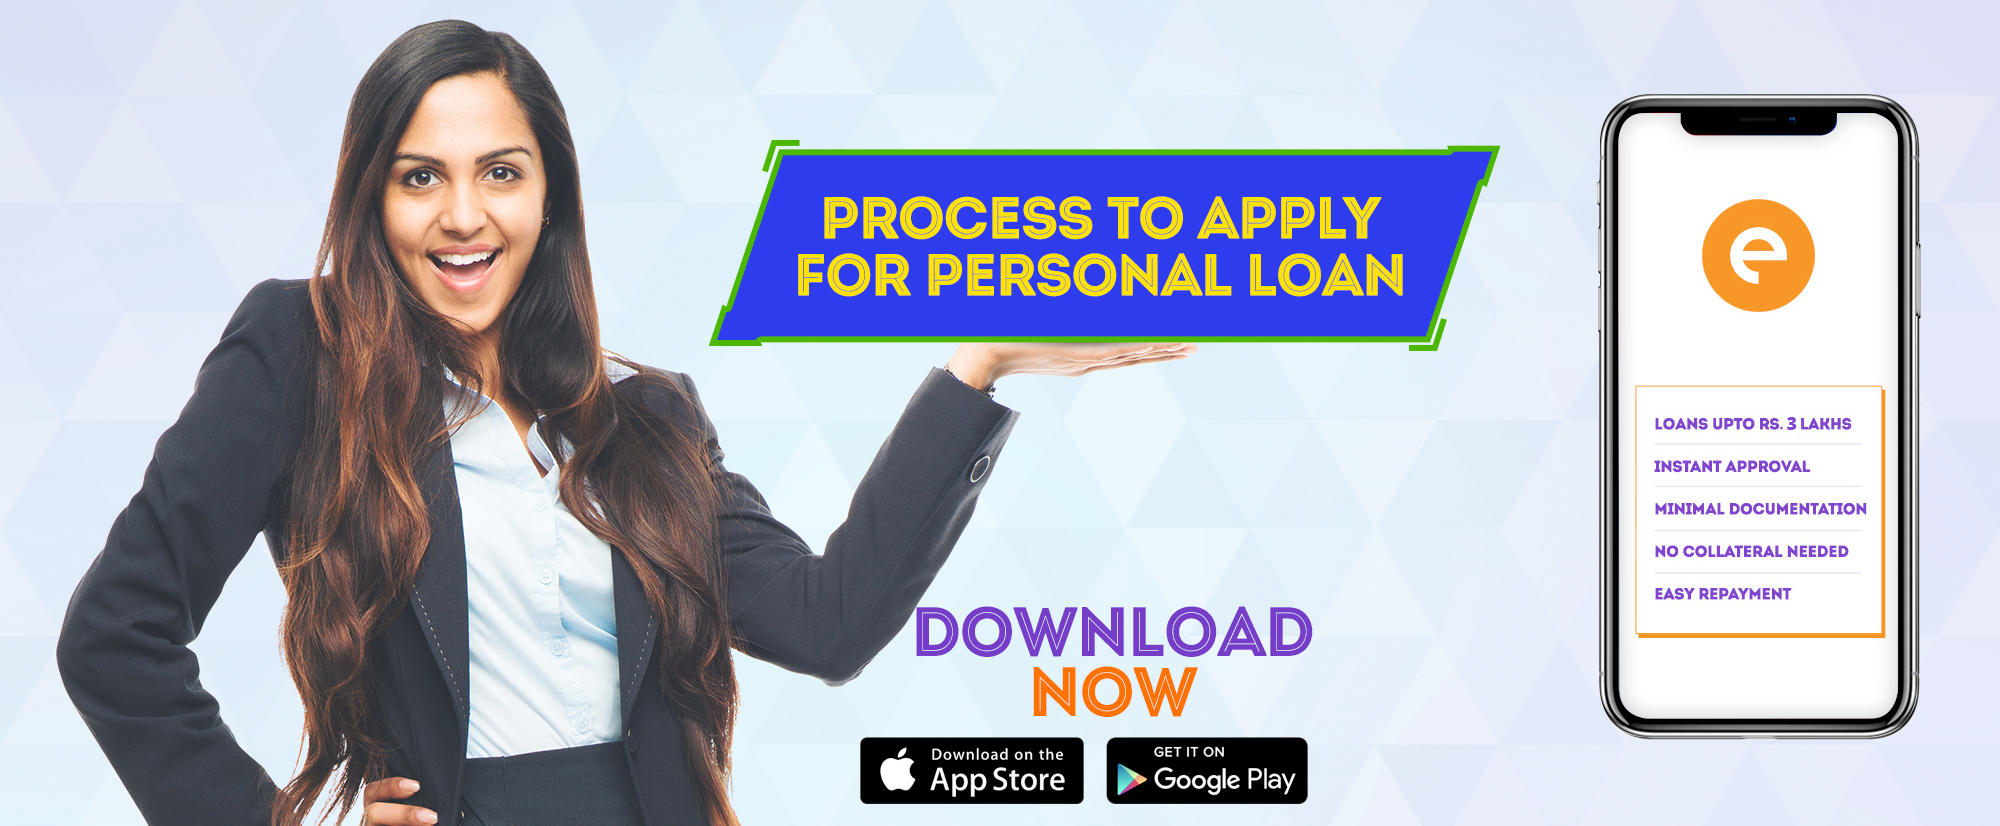 Application Process Of Personal Loans How To Apply Cashe App